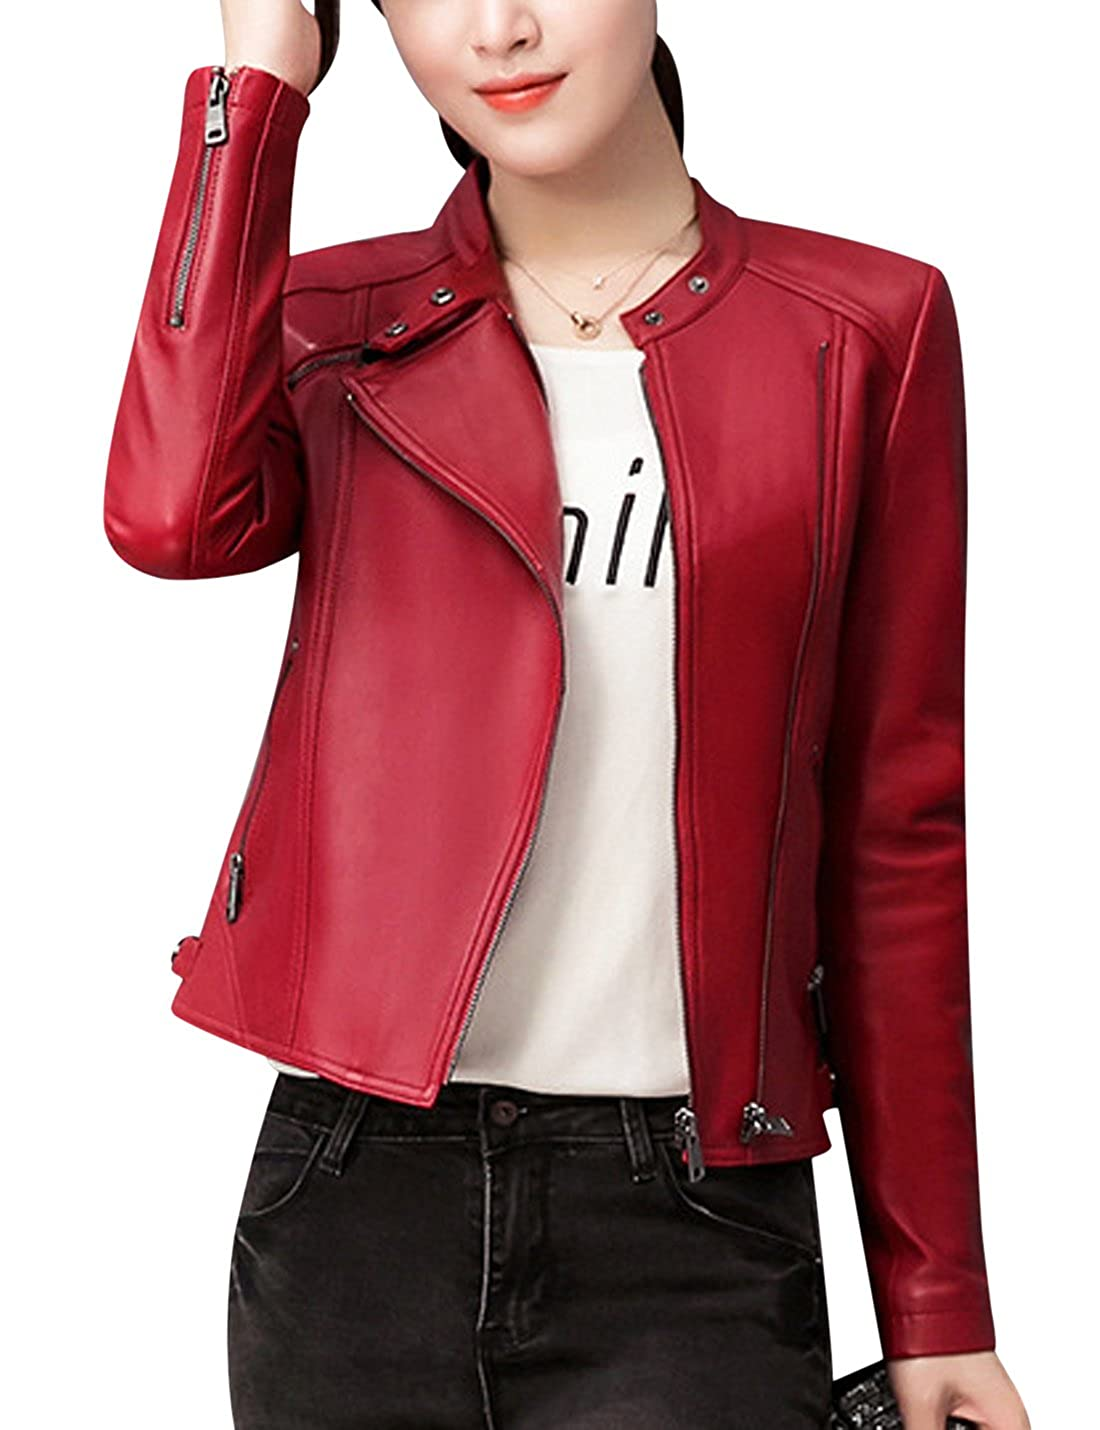 Uaneo Womens Round Neck Zip Up Faux PU Leather Bomber Jacket Outerwear